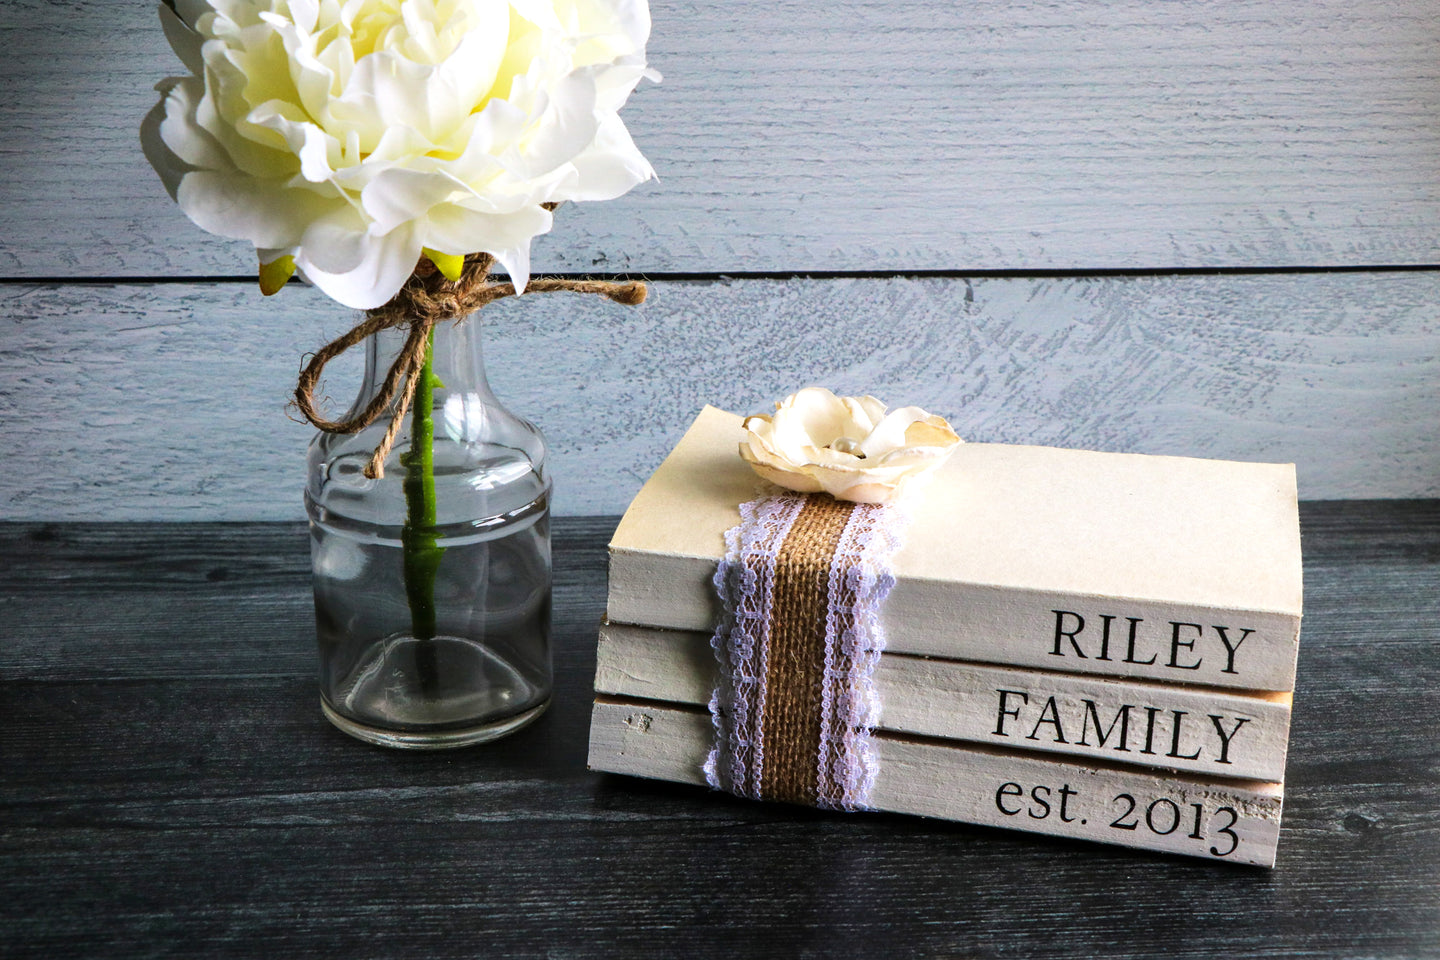 Personalized Family Name Book Set | Painted Book Stack